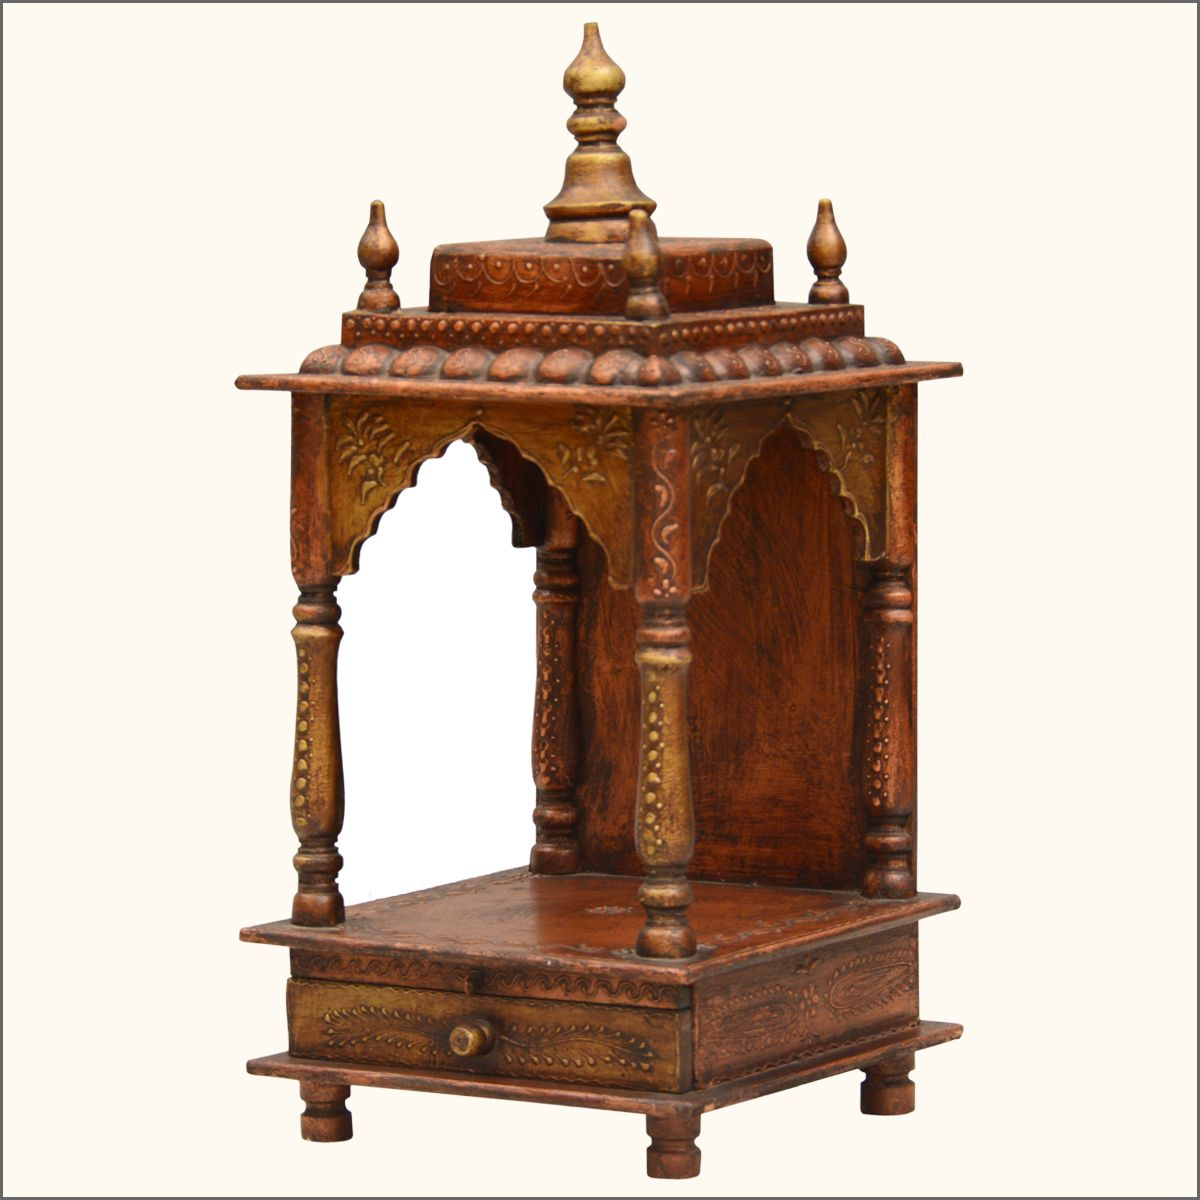 Wooden temple designs for home small temple for home wooden home - Mandir Home Designs Hindu Mandap Puja Temple Mandiram Mandapam Hindu Temple Designs For Home